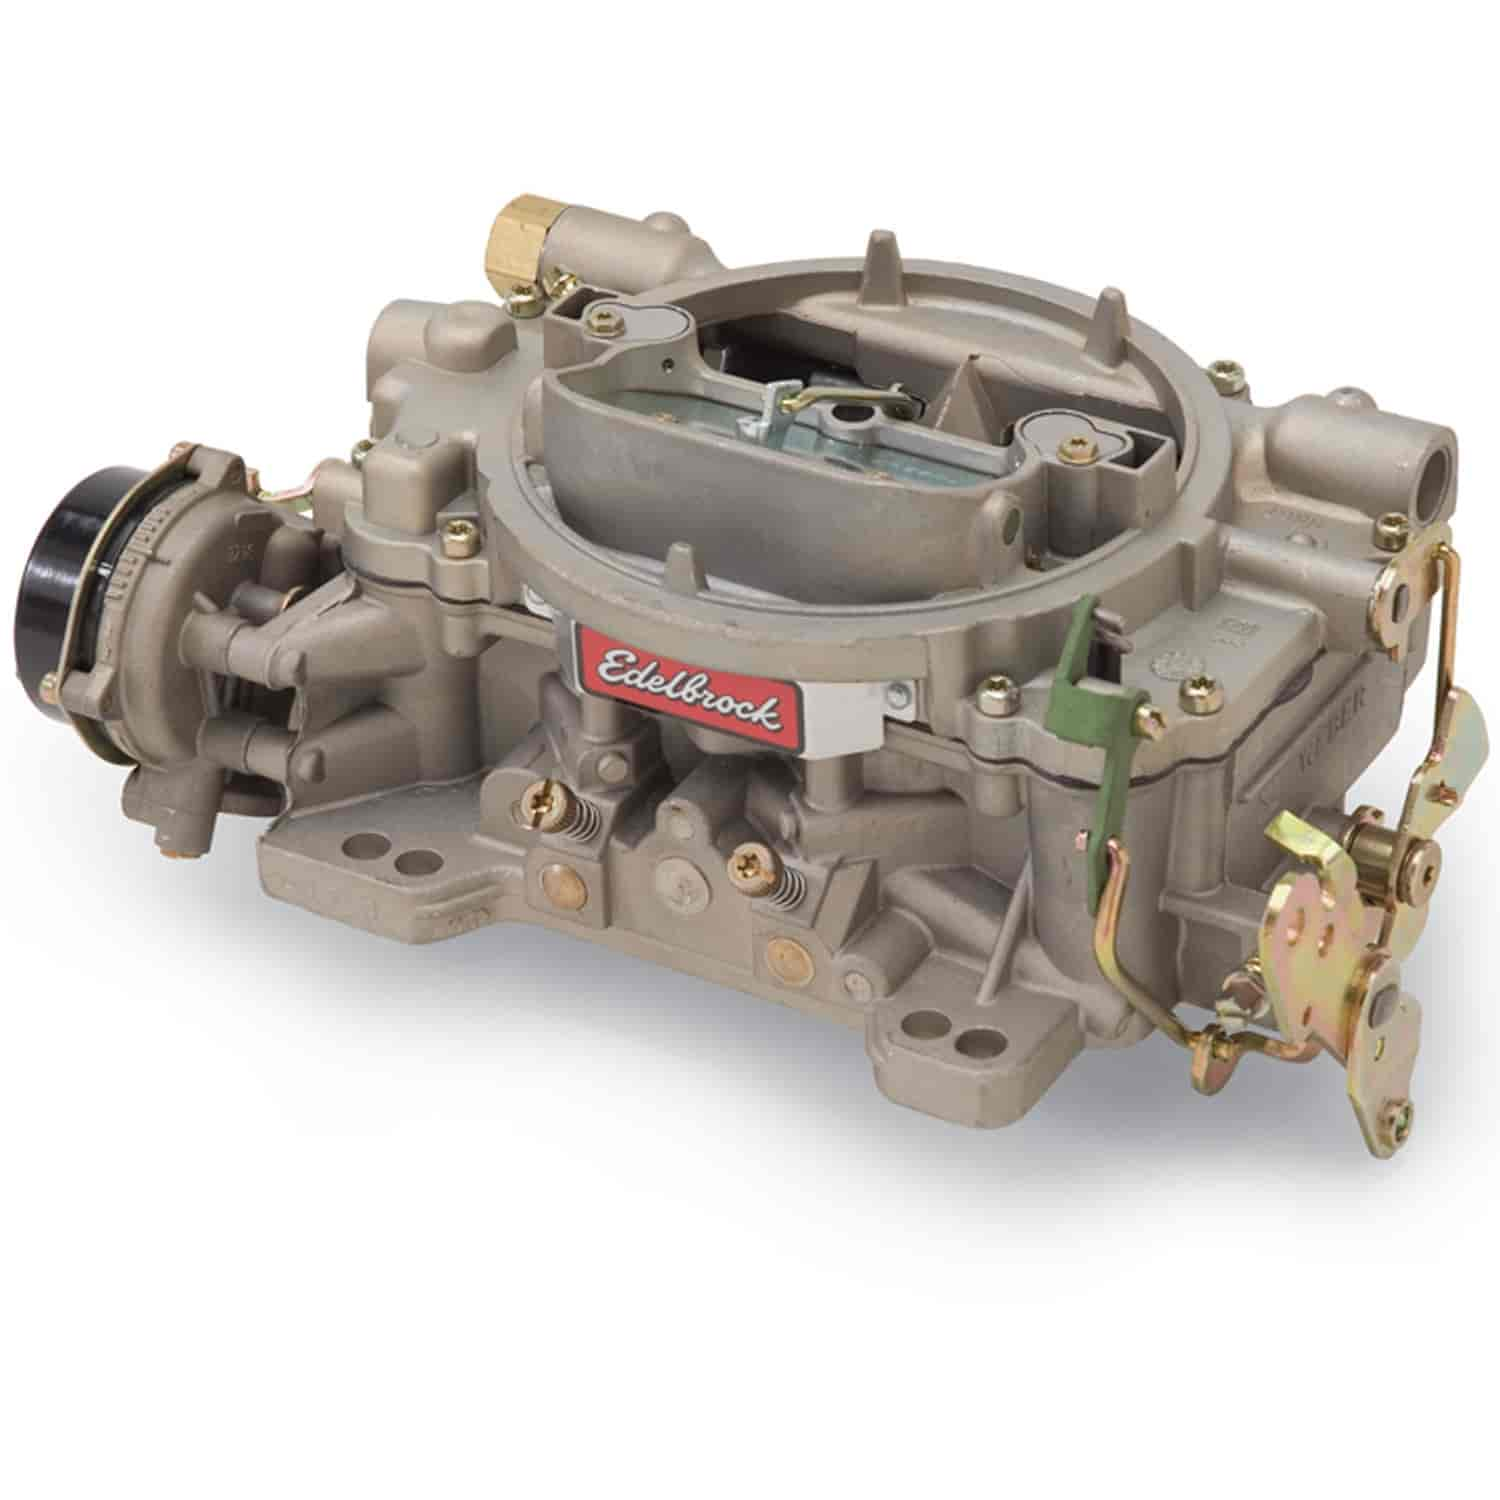 Edelbrock 1409 Marine 600 CFM Carburetor w Electric